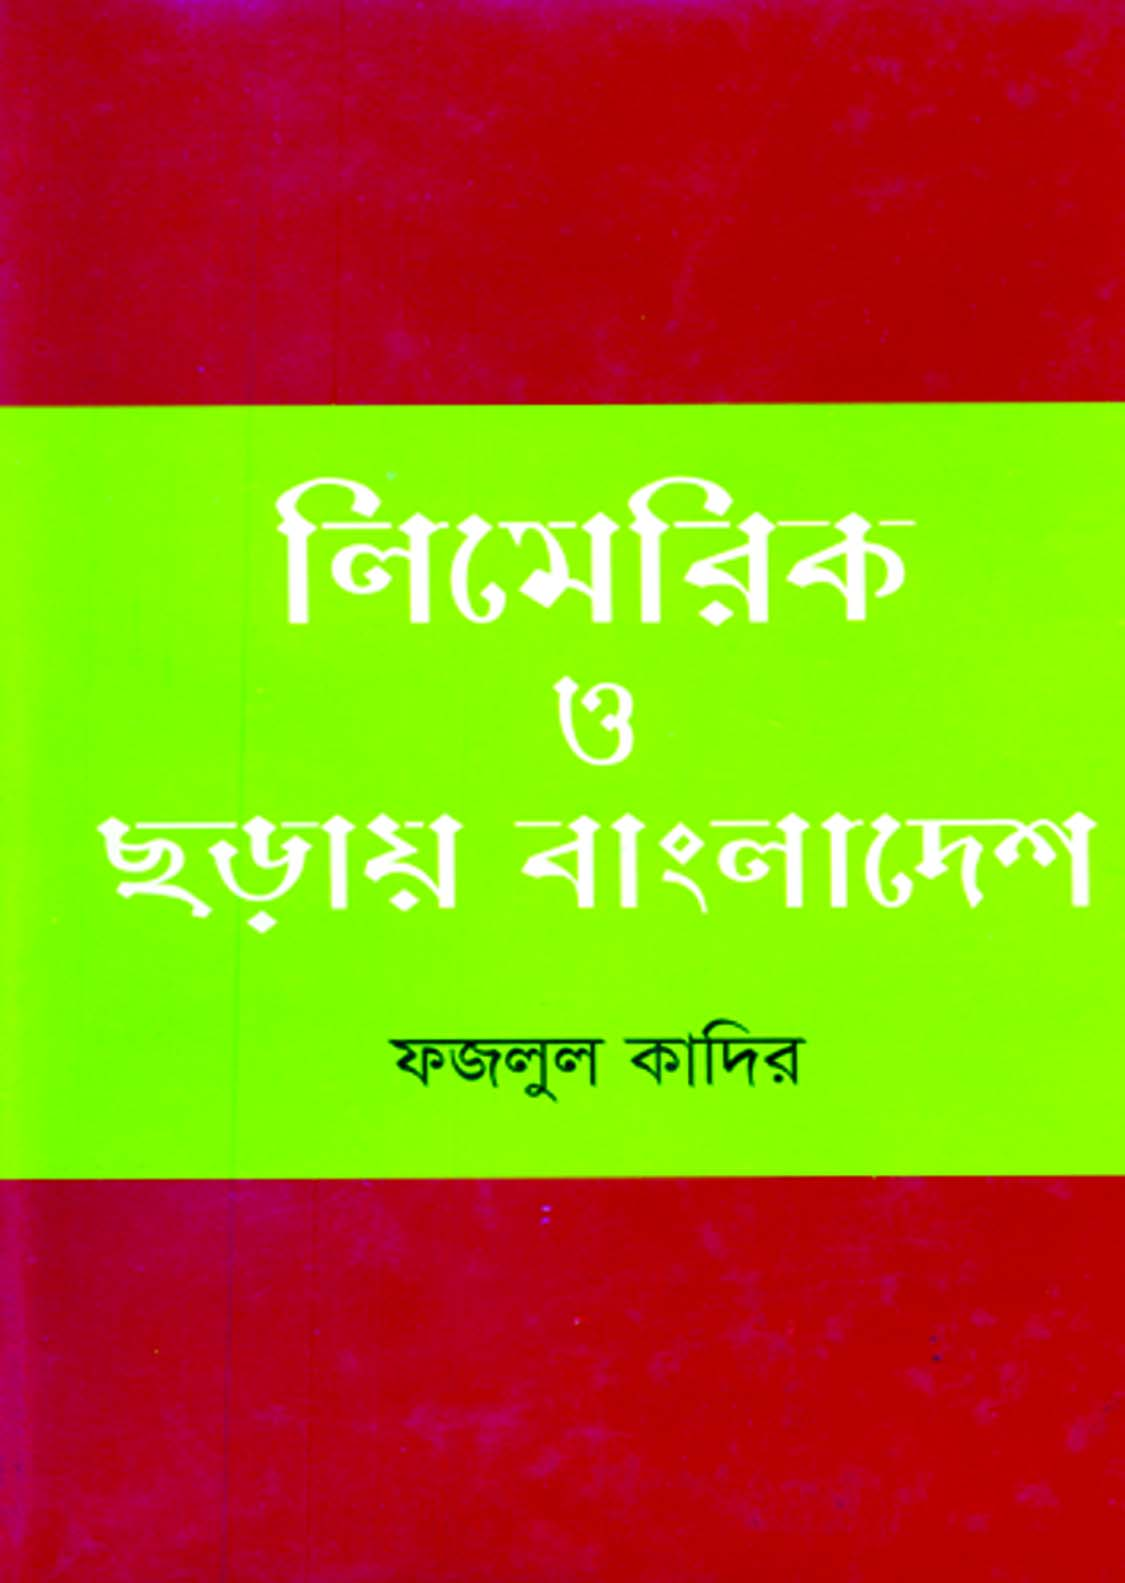 Limerick O Chhoray Bangladesh by Fazlul Quadir. First Publication: February 2017. Publisher: Mohammad Mizanur Rahman, Shahitta Kotha, 34, North Book Hall Road, Banglabazar, Dhaka. Cover: Sourav Mahmud. Composition: Sabit Computer Service. Printing: Meraz Colour House, Size: DD 1/16. Format: 4. Price: Tk 150. US.$3